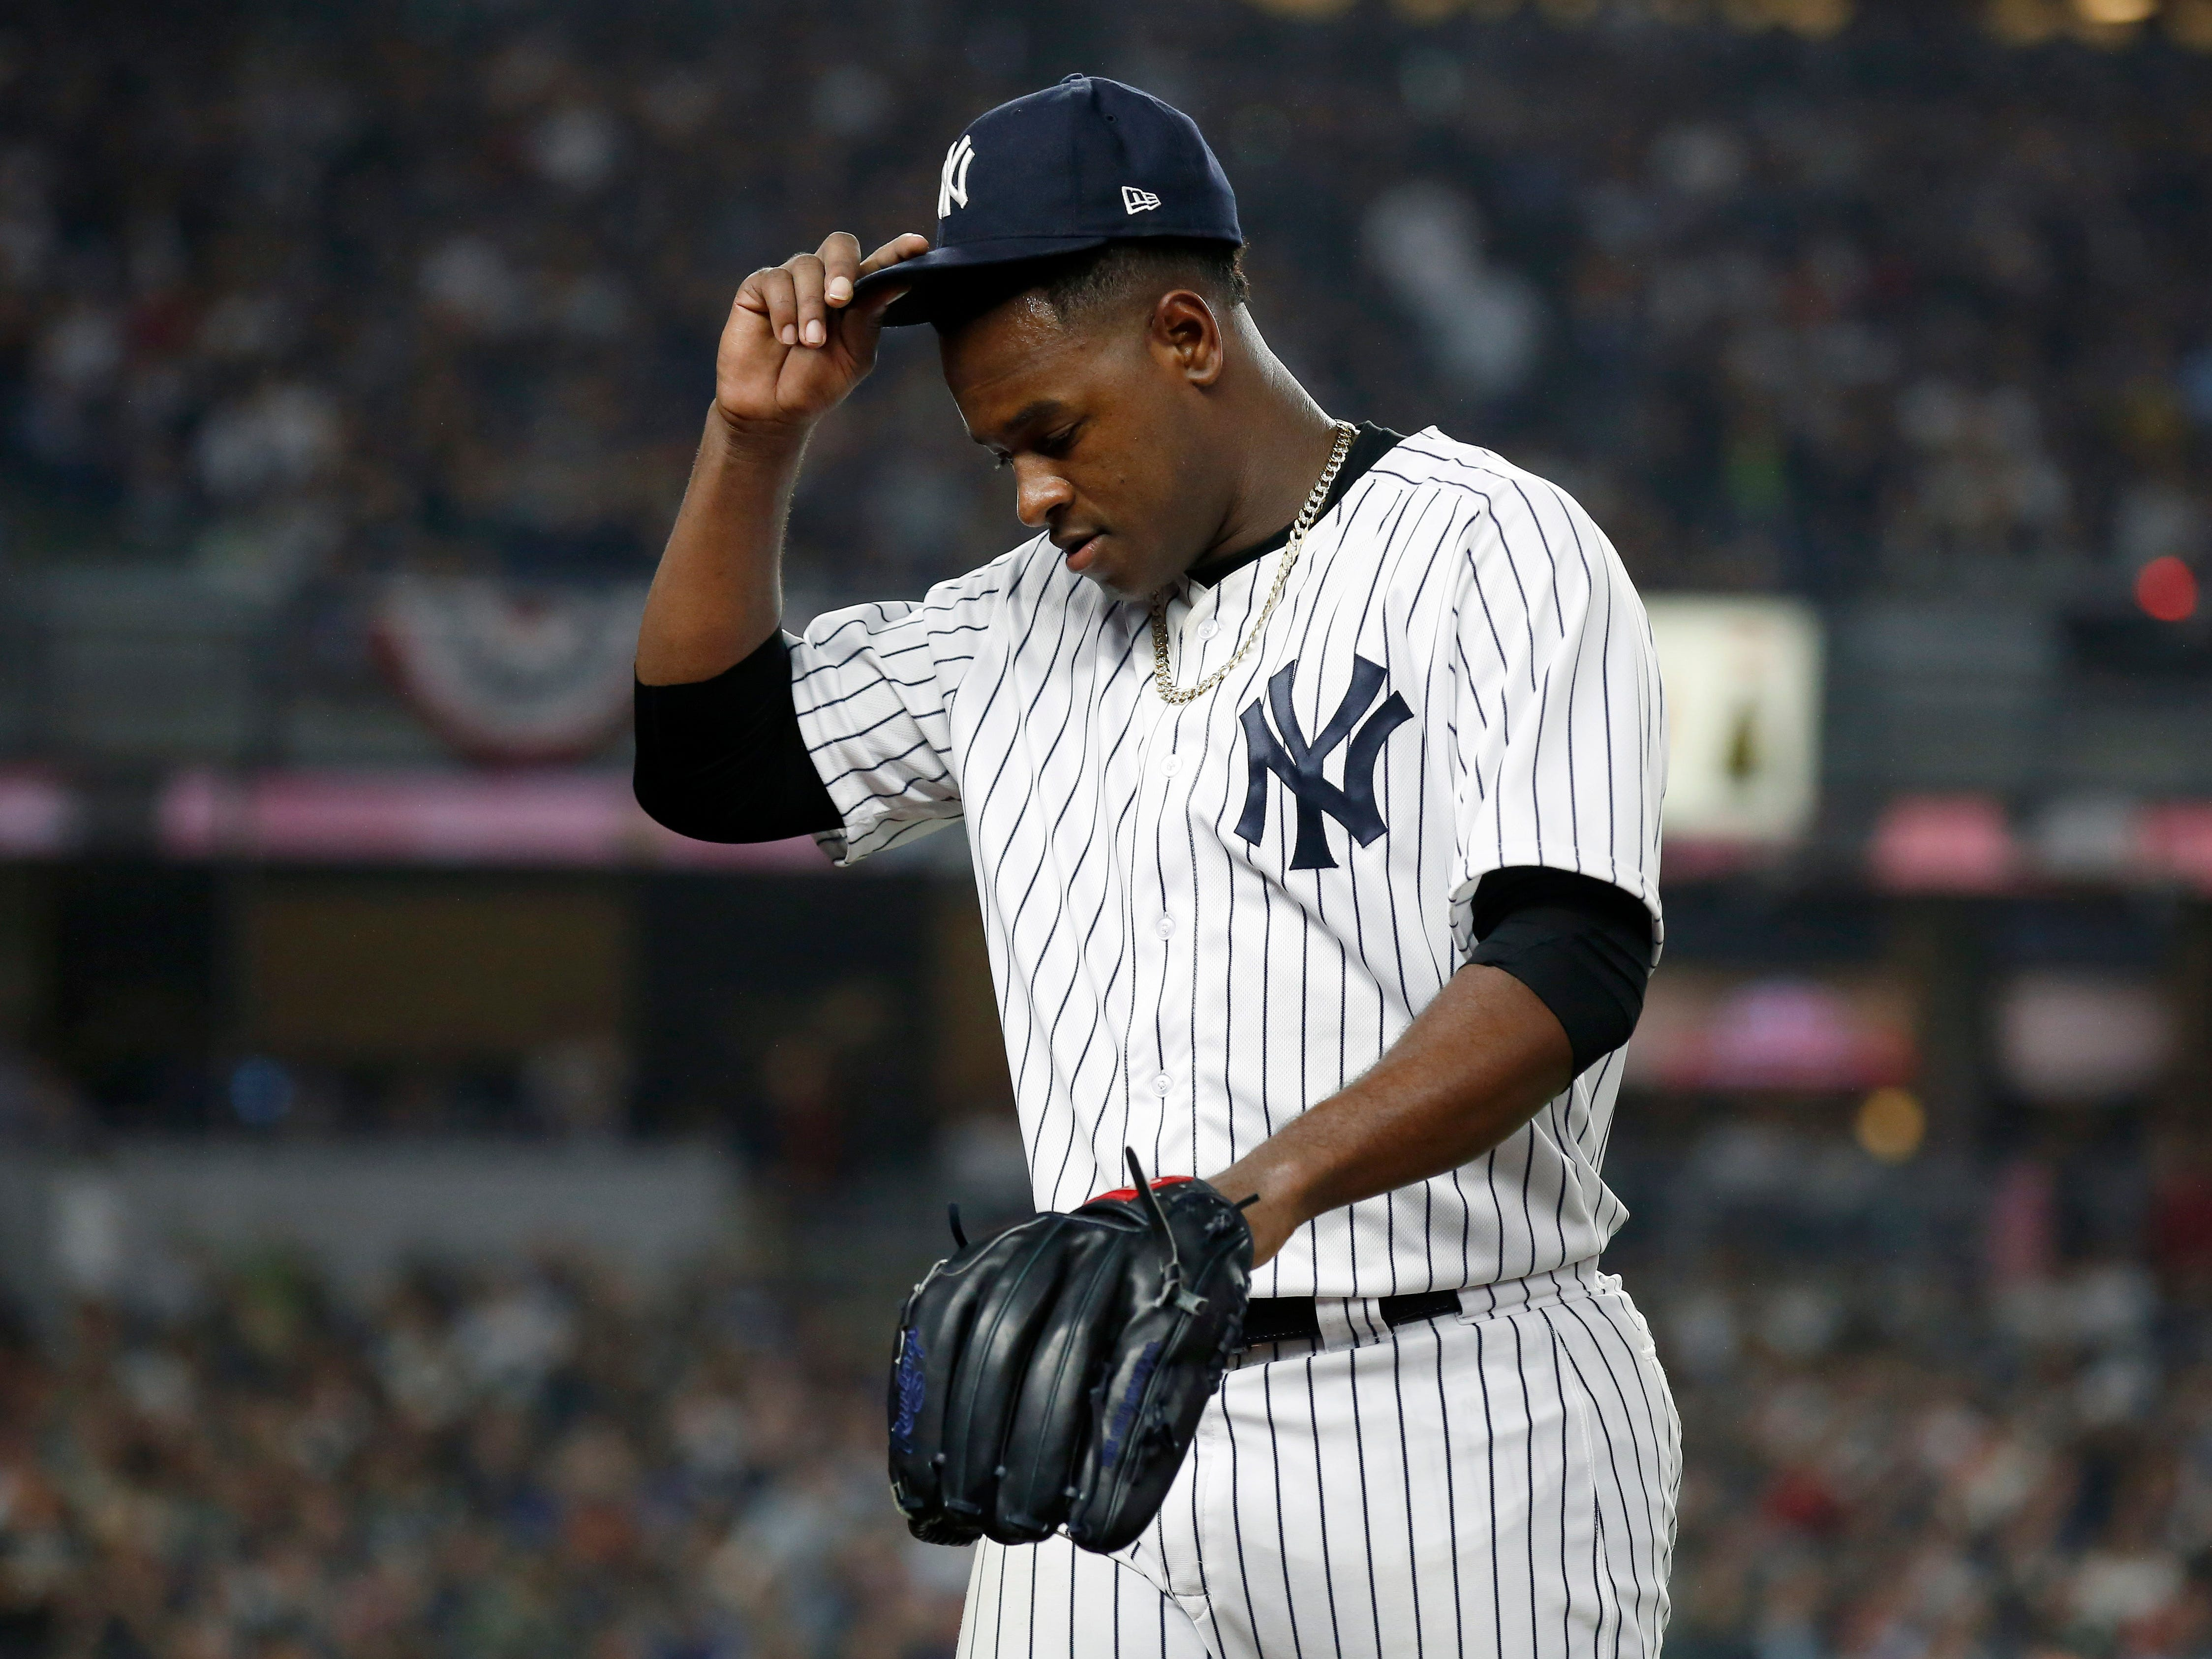 ALDS Game 3: Yankees starting pitcher Luis Severino allows six earned runs in three innings.